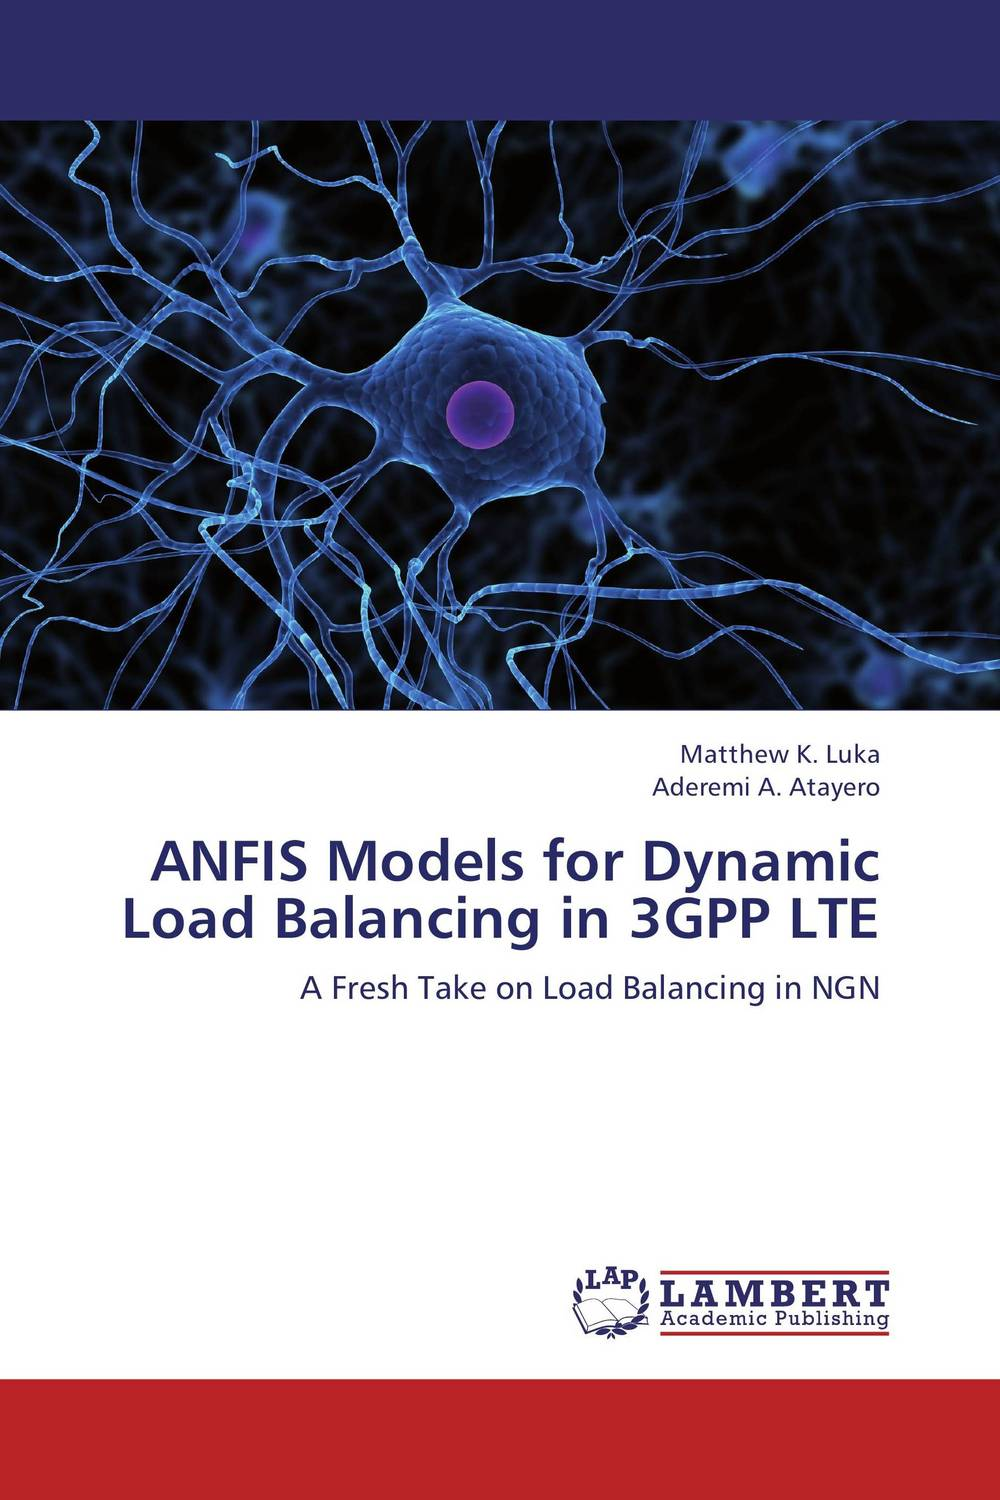 ANFIS Models for Dynamic Load Balancing in 3GPP LTE load balancing in grids using ant colony optimization algorithm